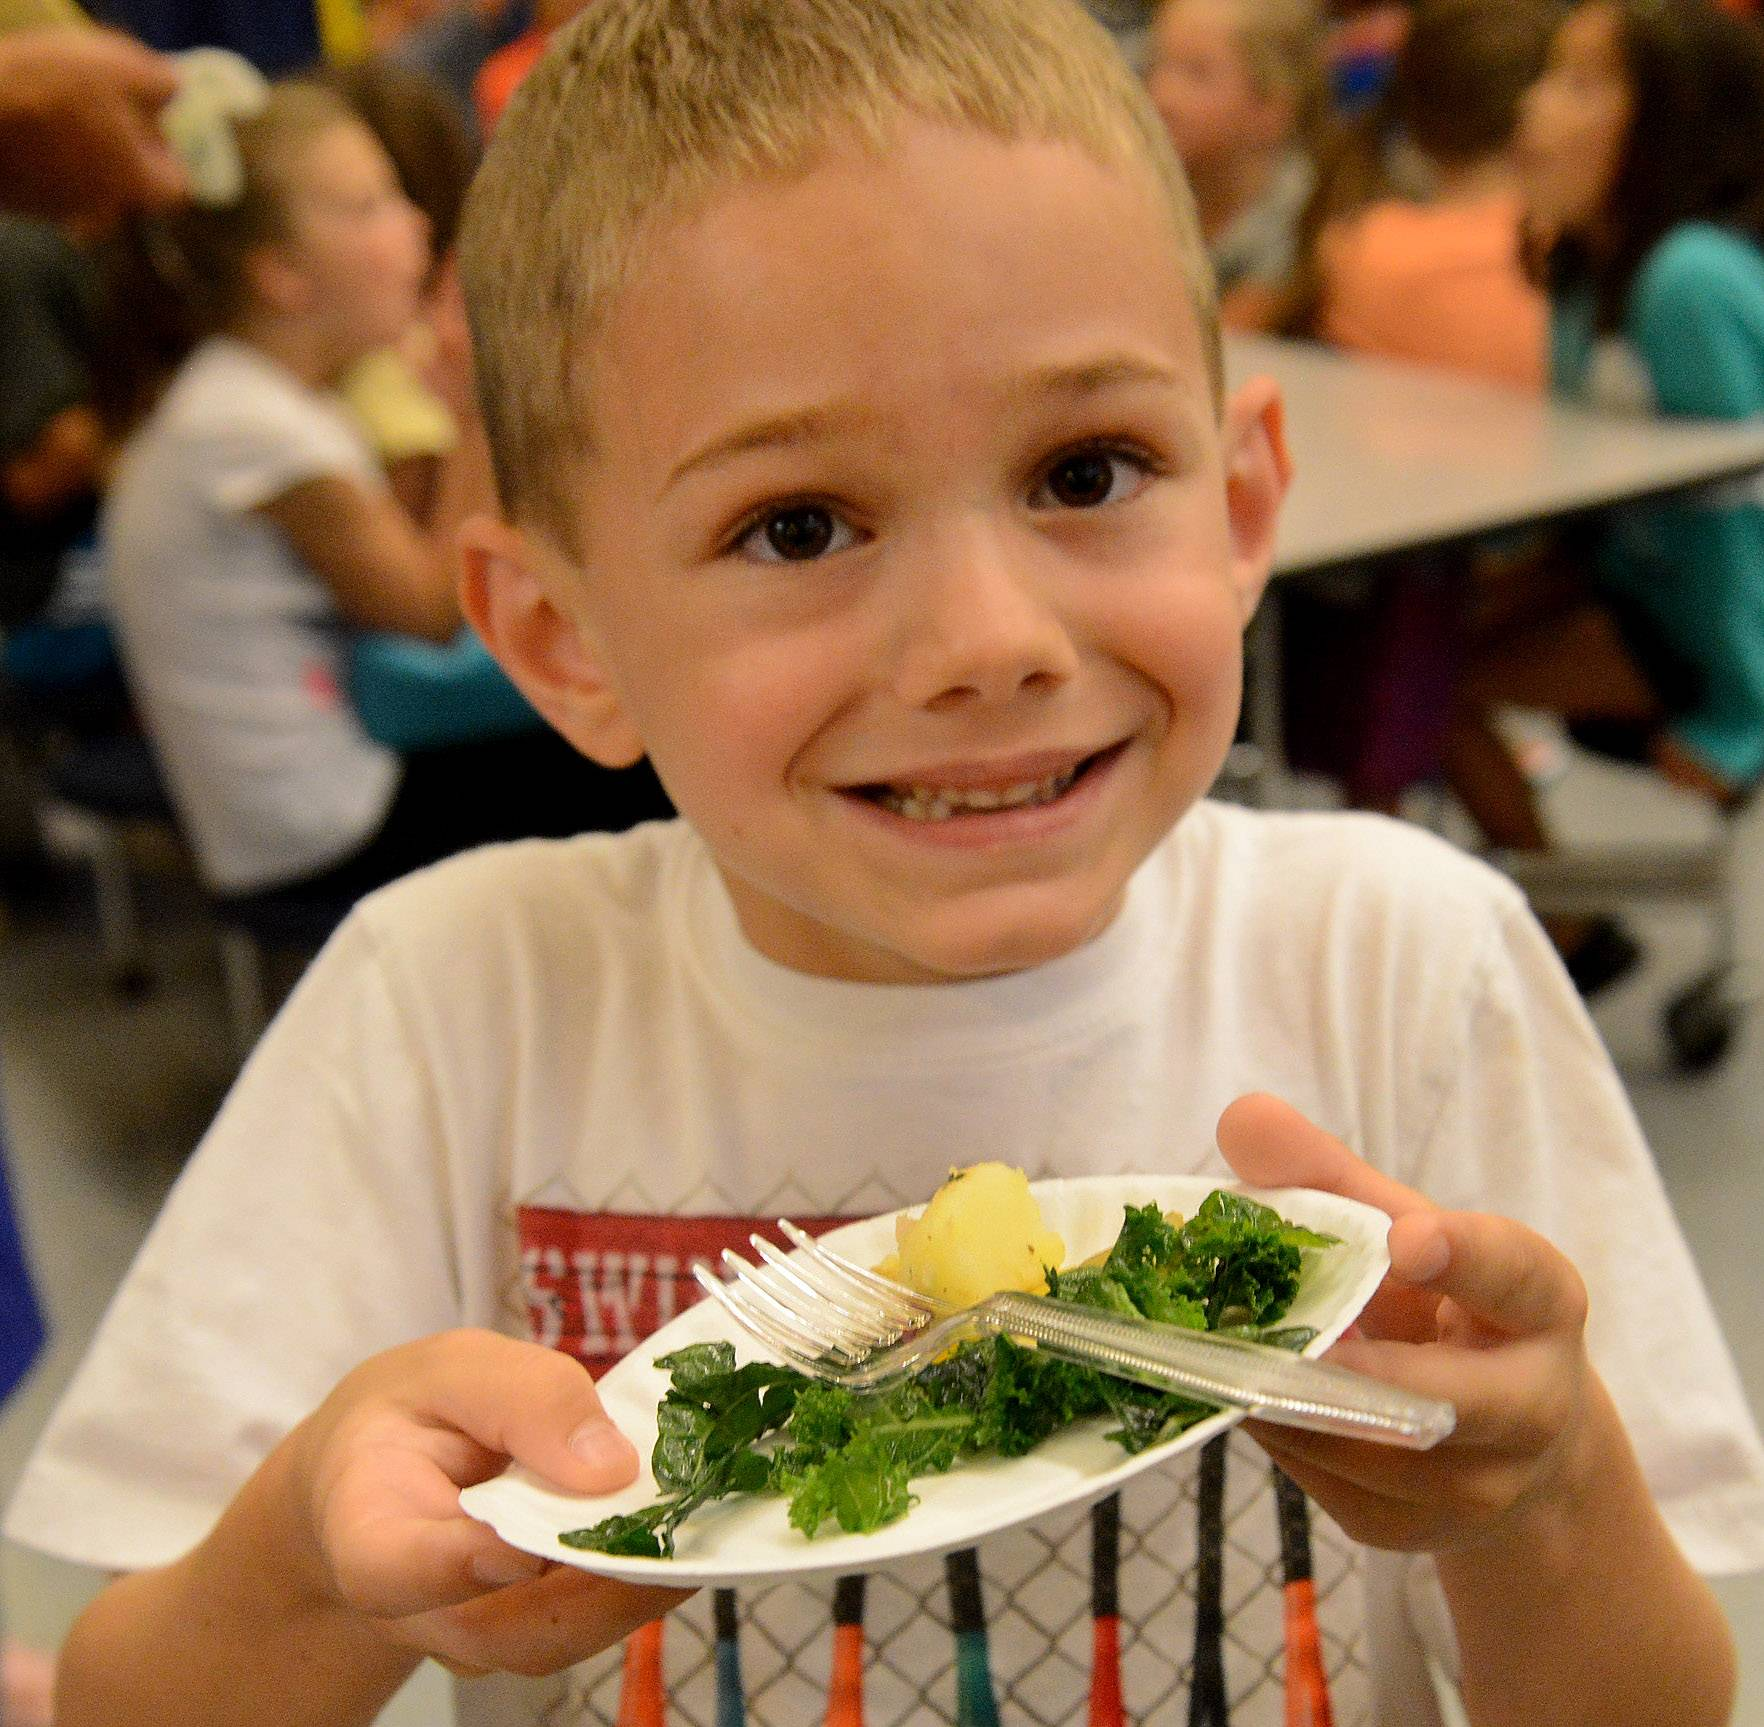 First-grader Cole Licato holds up his plate of kale, potatoes and beets salad during the fifth annual Windsor School Garden Tasting, featuring food from the school garden prepared by chef Tom Leavitt.